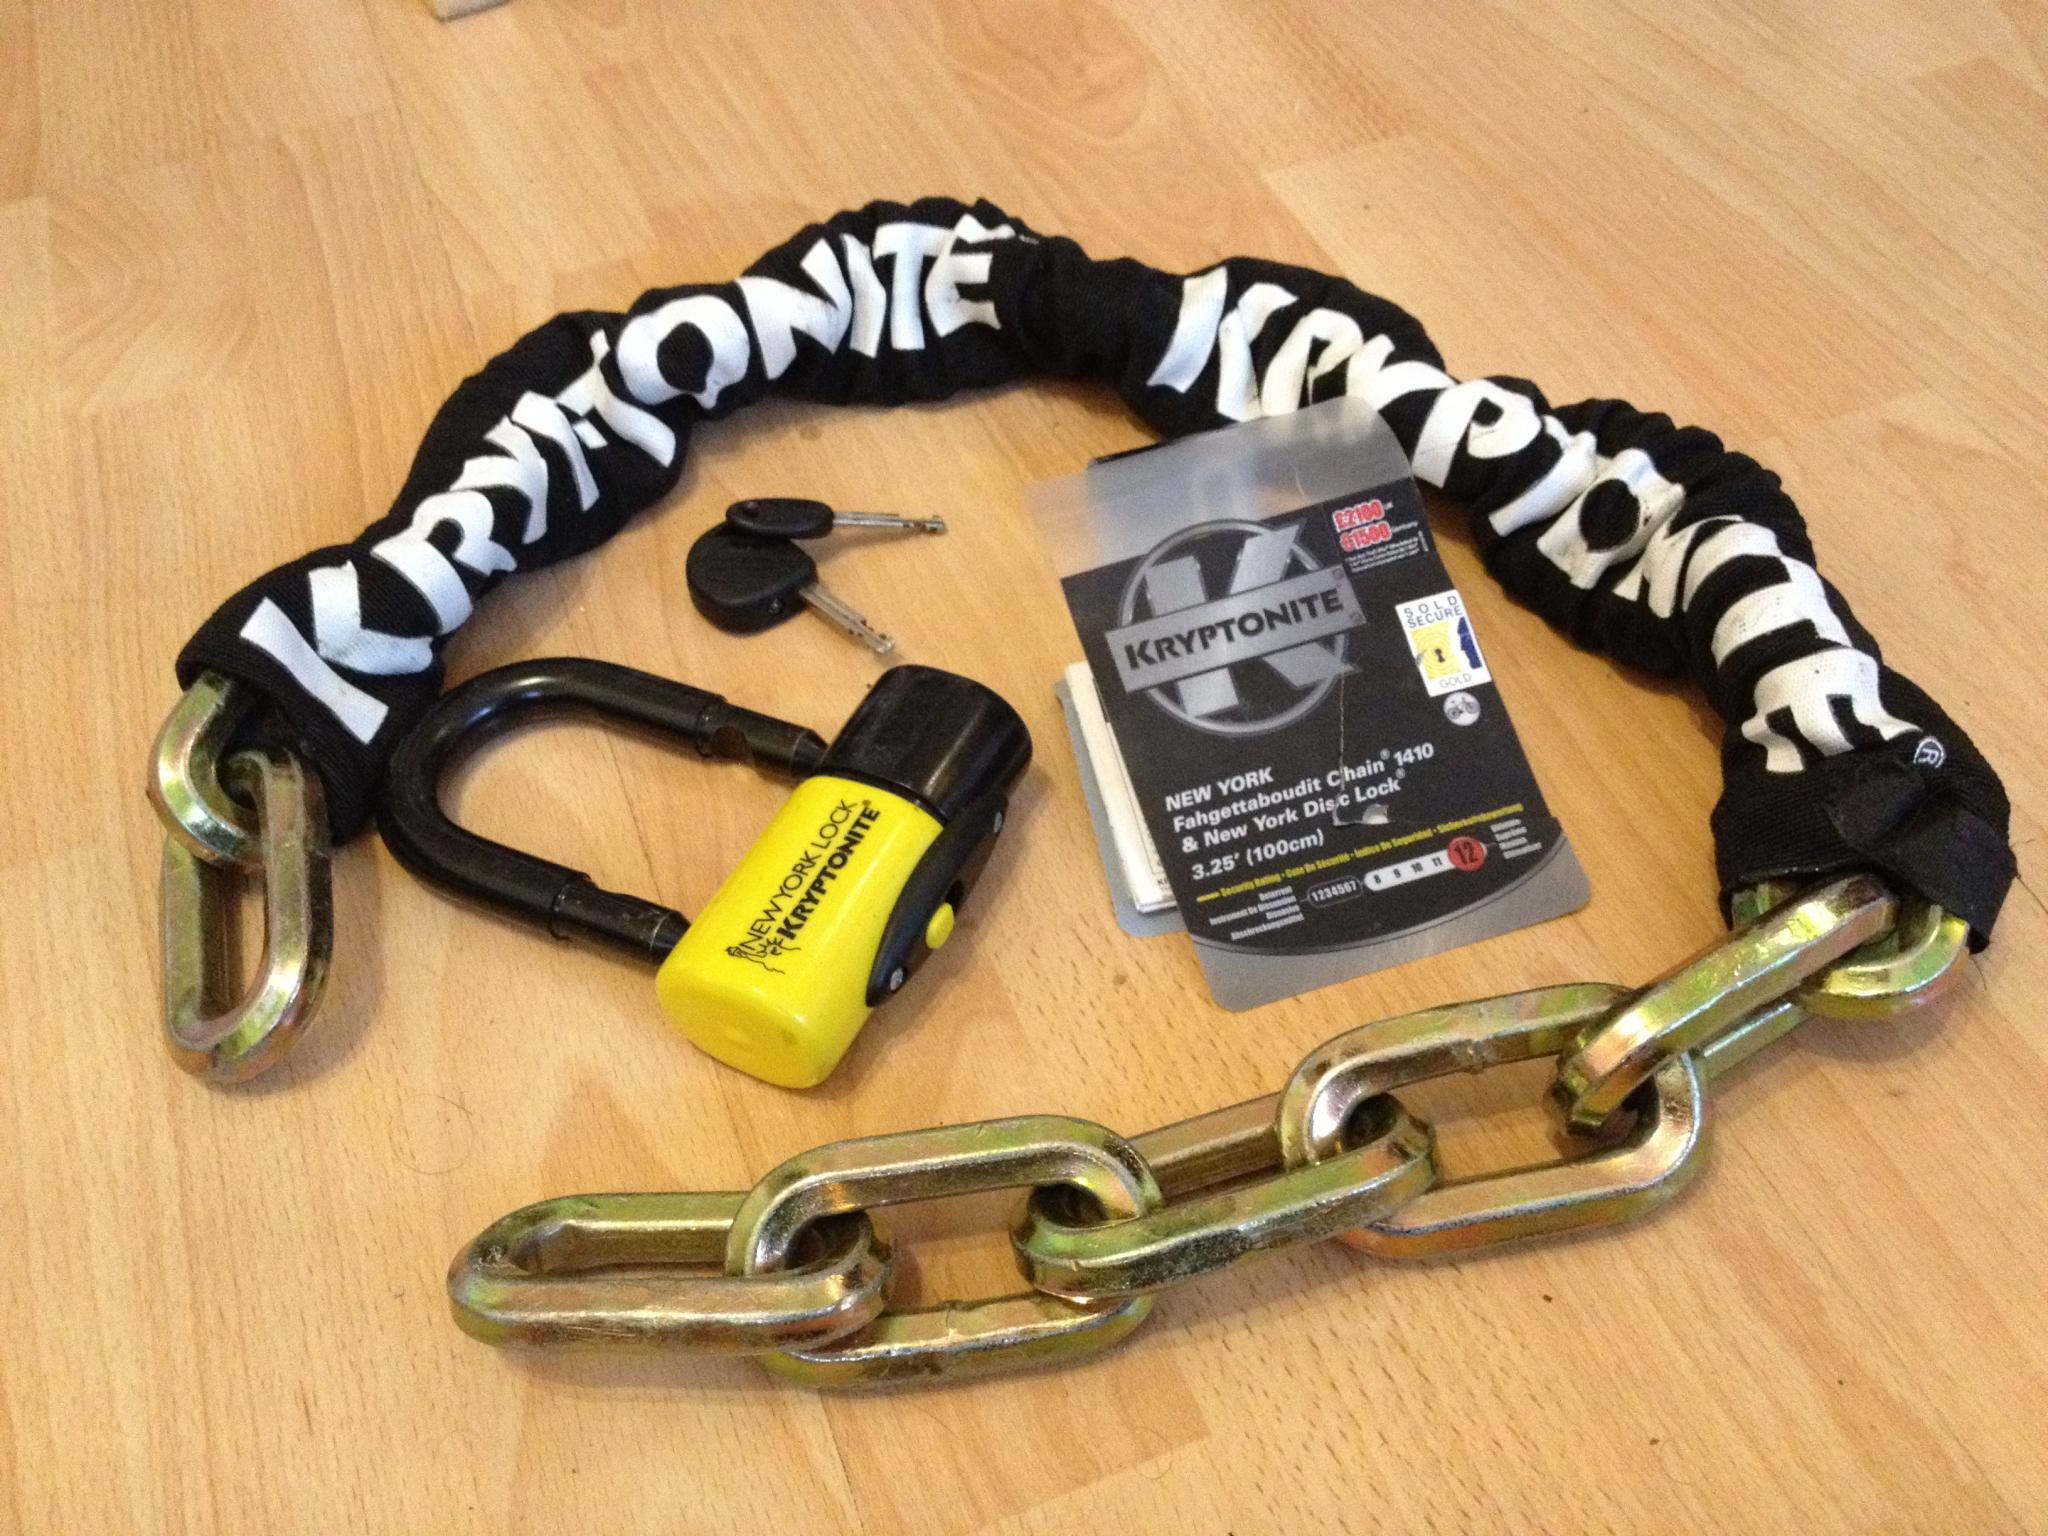 c827484952353 For Sale  Kryptonite New York Fahgettaboudit chain lock 1410